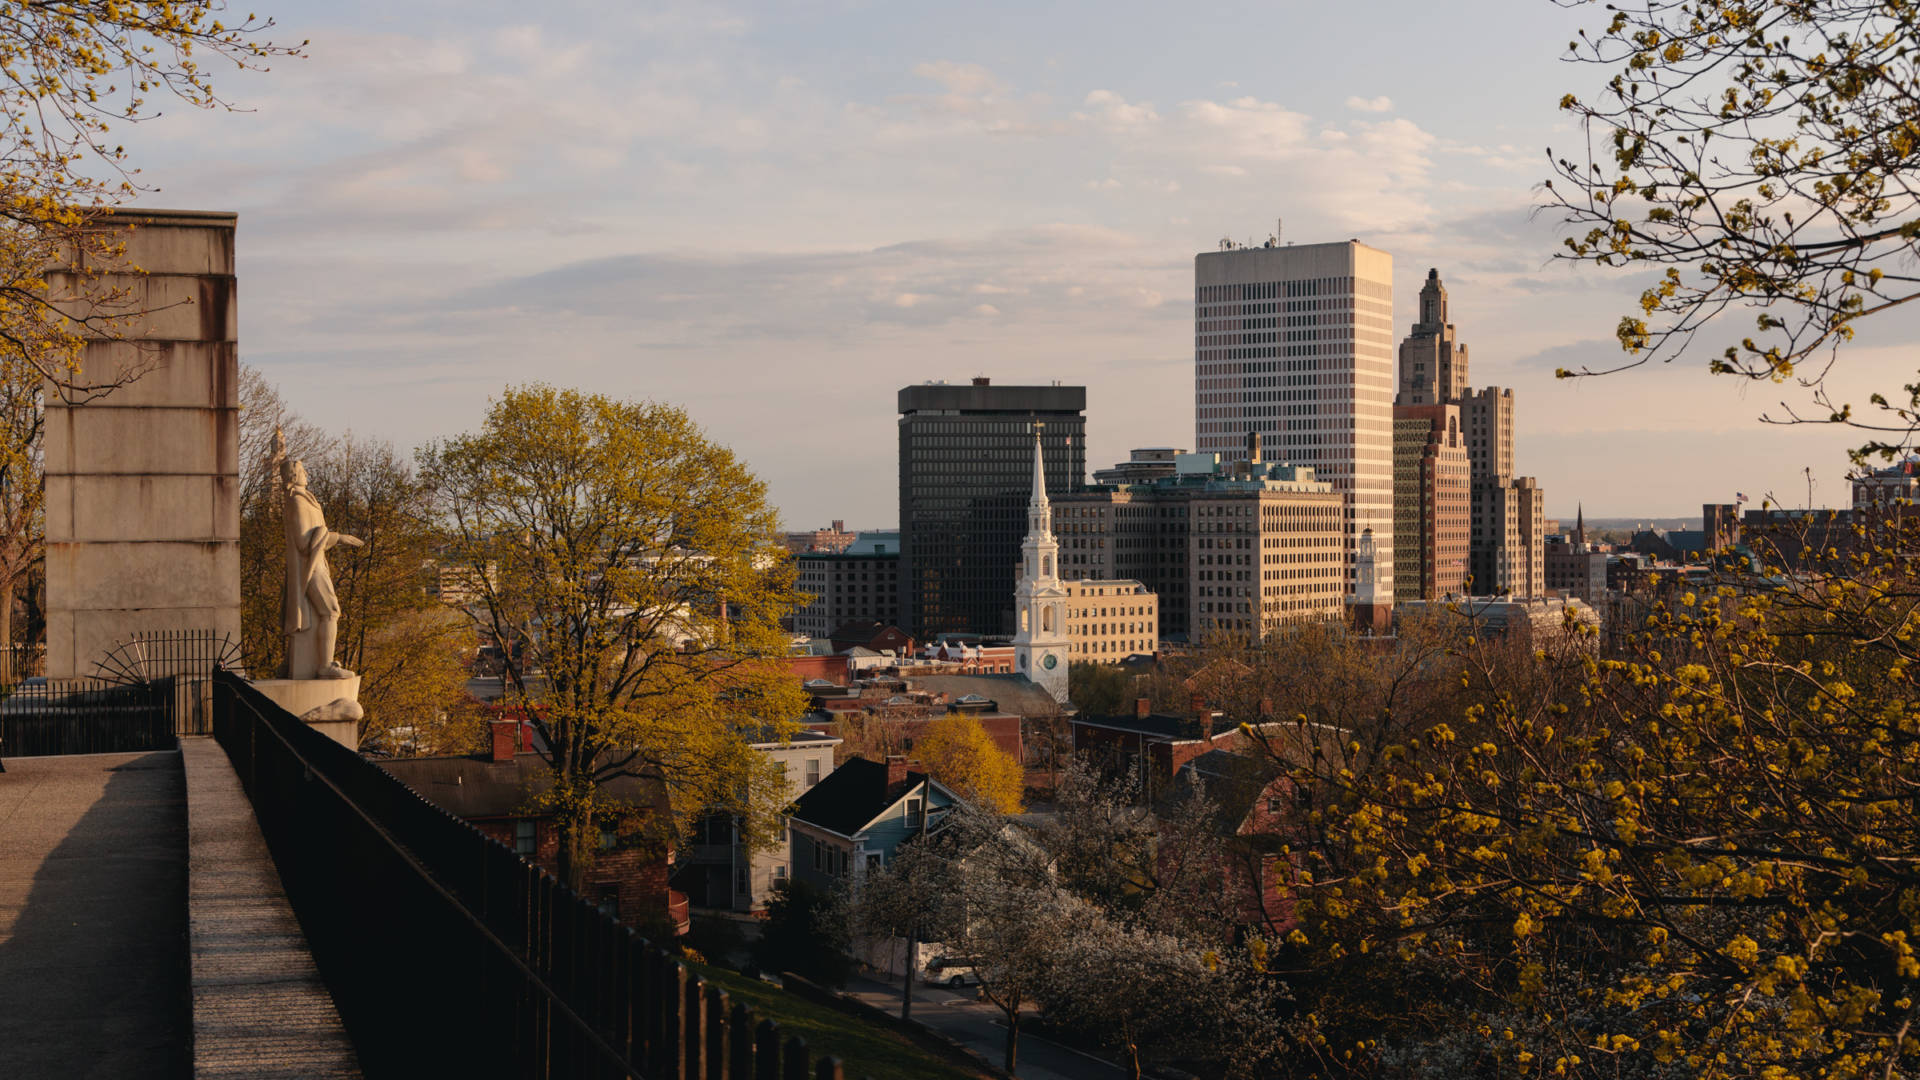 Spring evening at Prospect Terrace Park in Providence